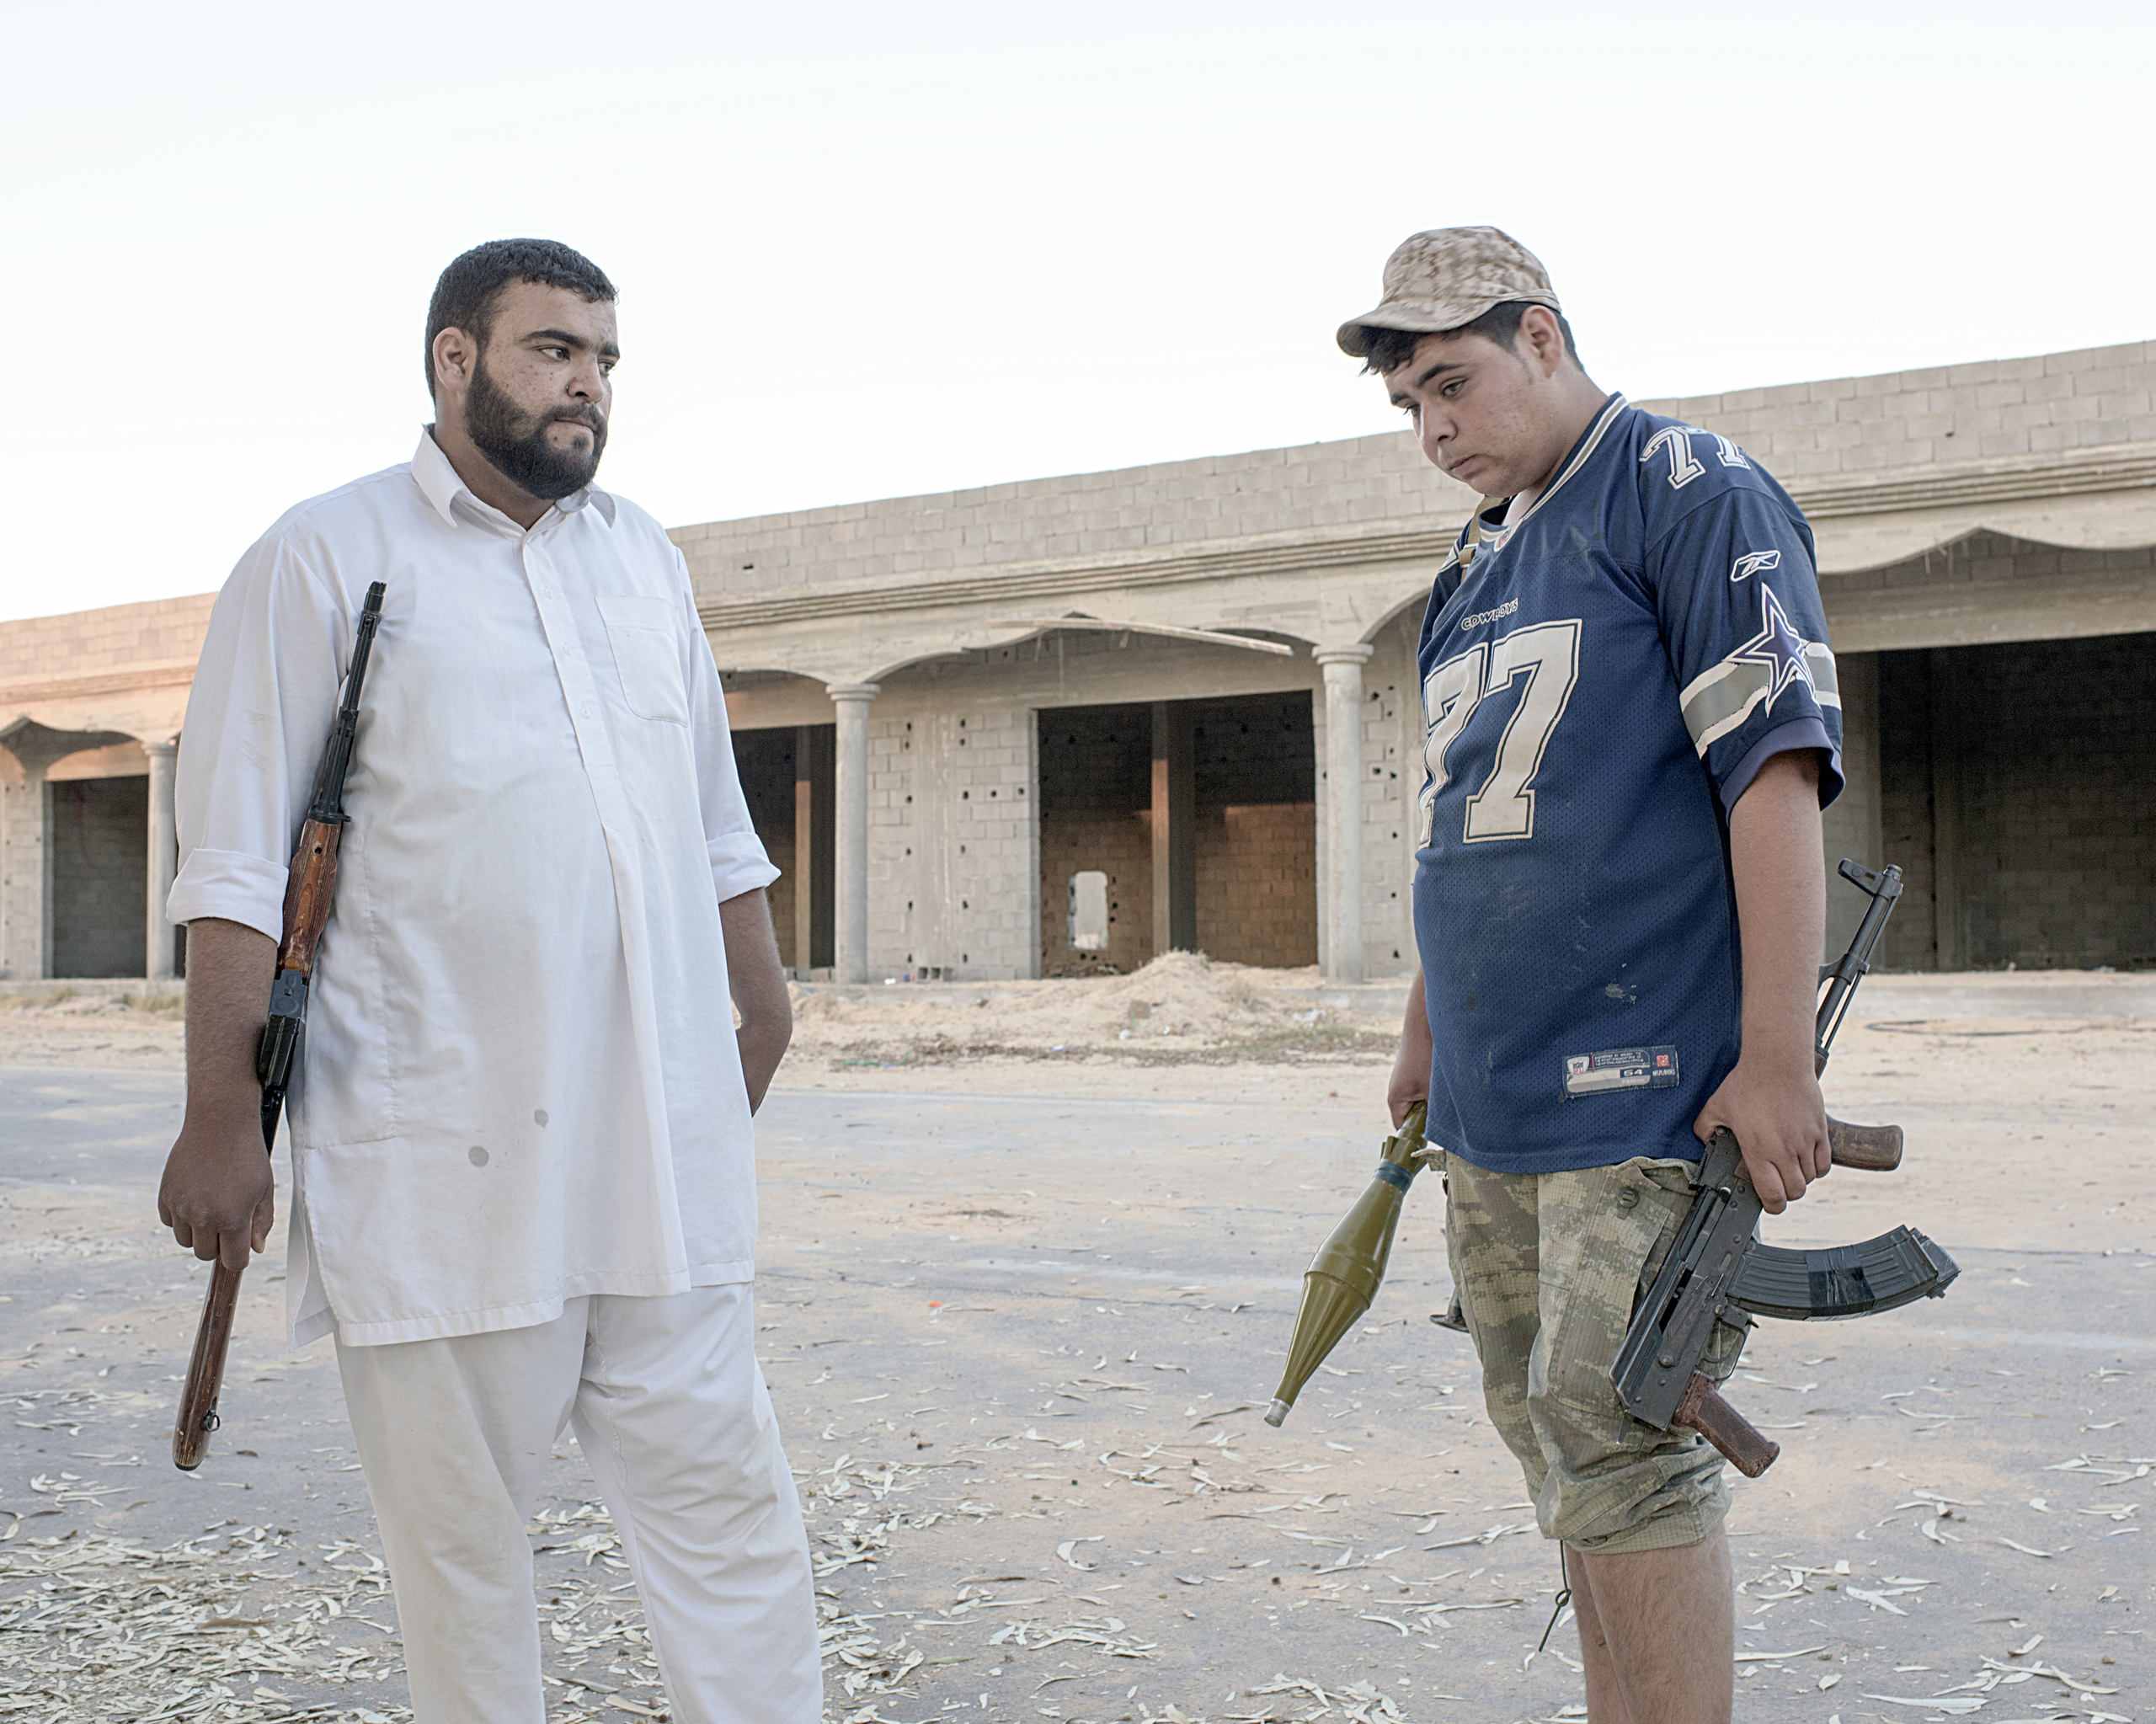 Two Libyan civilian volunteers who are fighting on the frontline against ISIS, Sirt, Libya, July 2016.